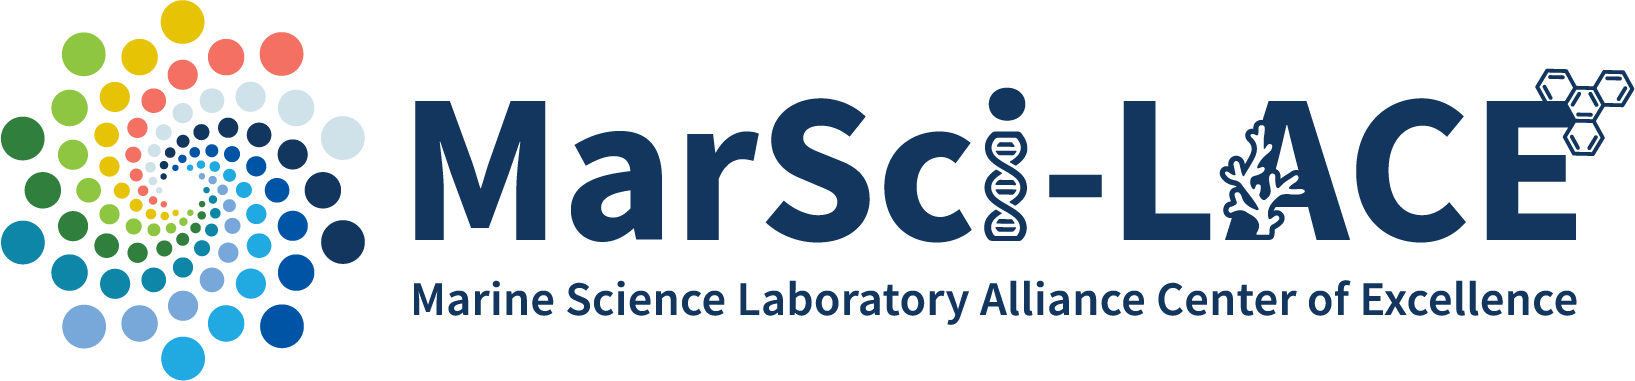 Marine Science Laboratory Alliance Center of Excellence